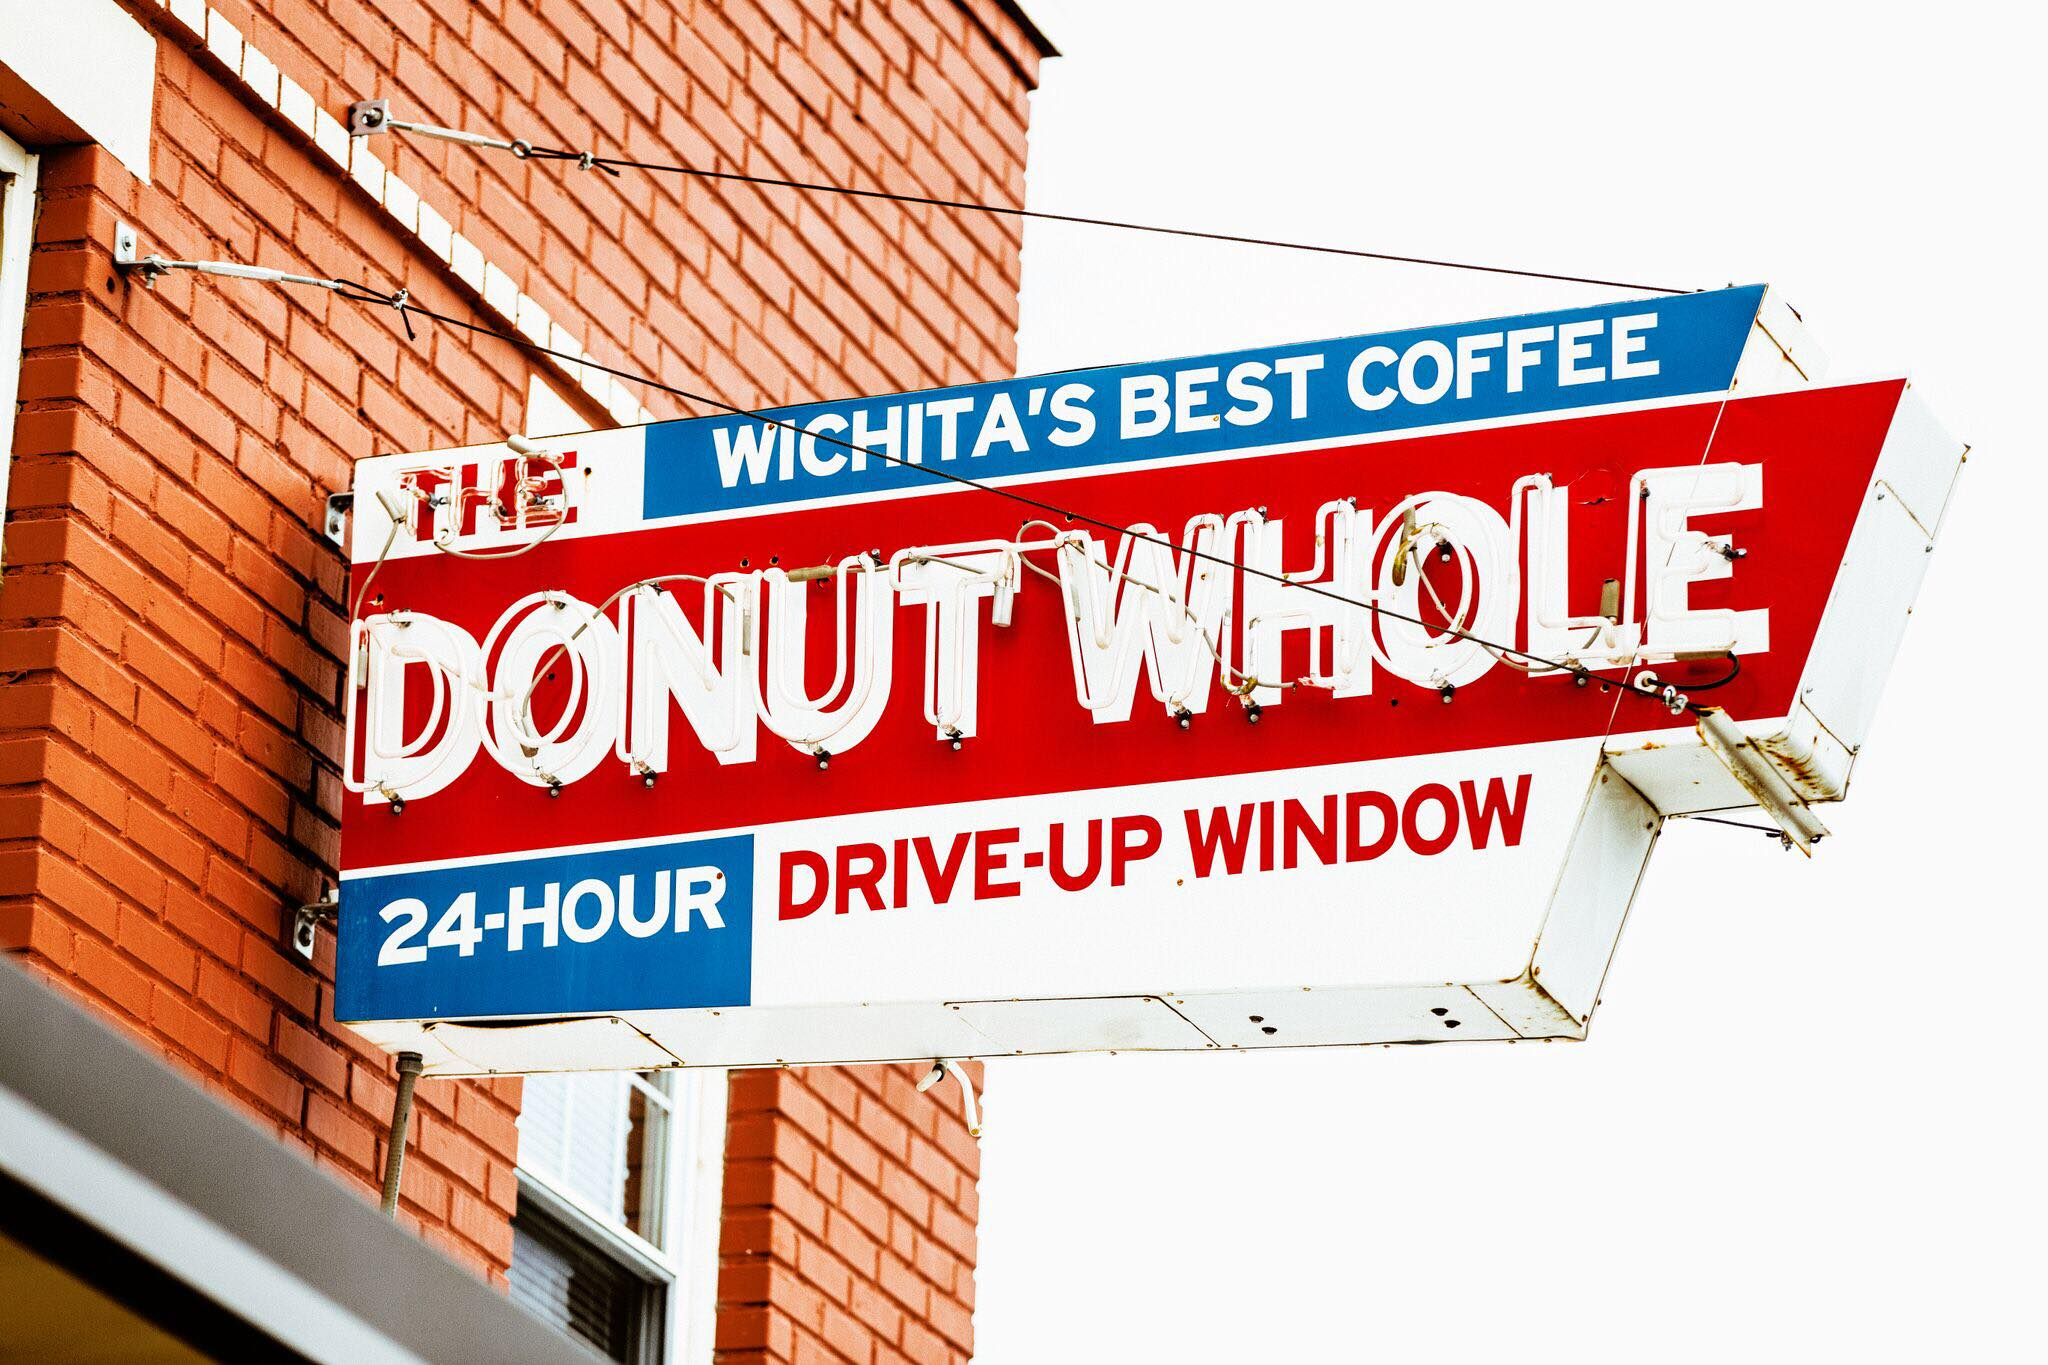 Donut-Whole-sign.jpg